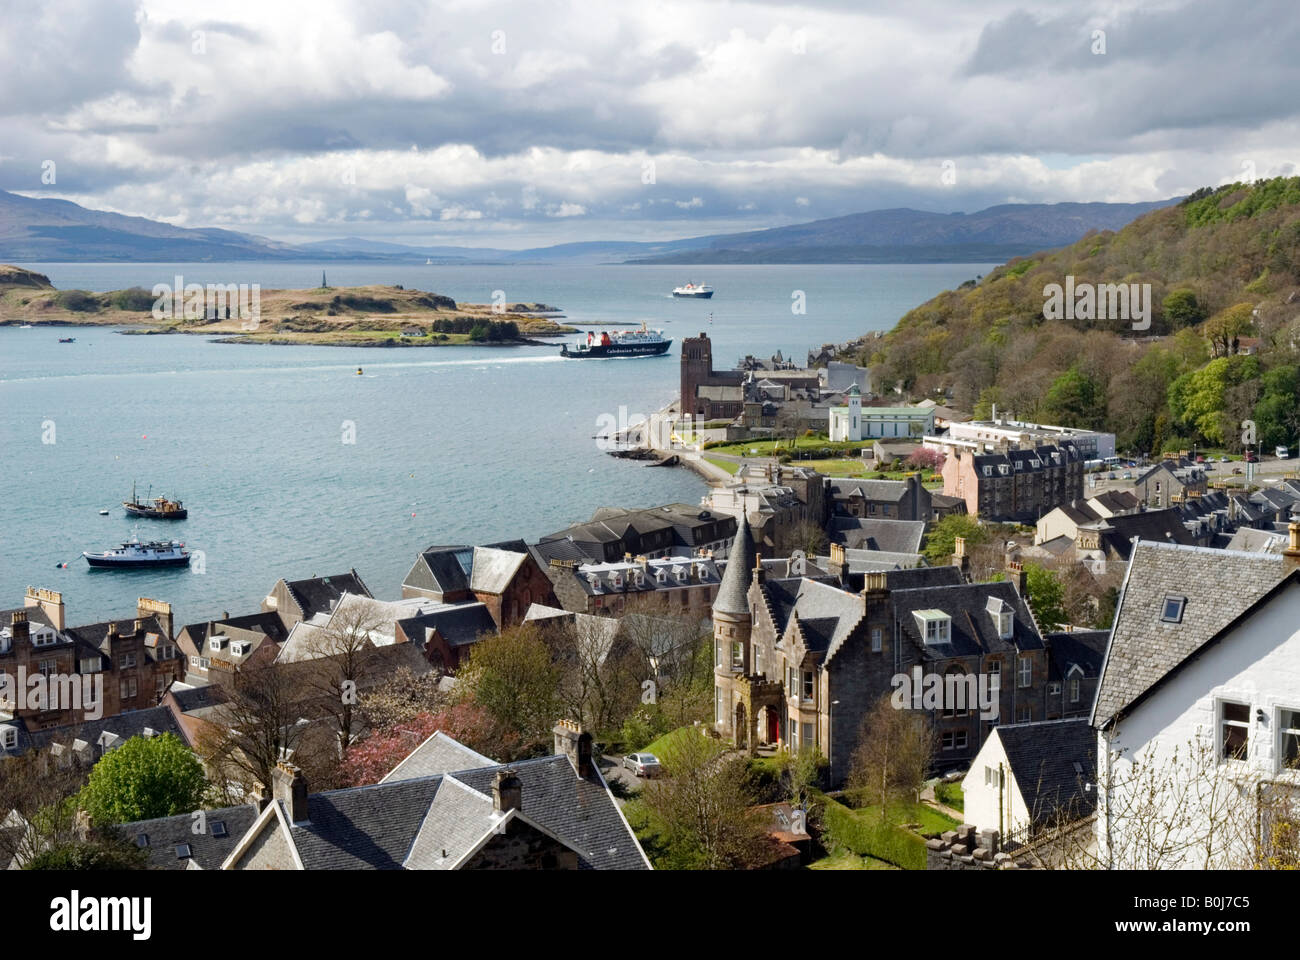 View over Oban, towards Mull, with the Cathedral shown near the ferry boat Stock Photo